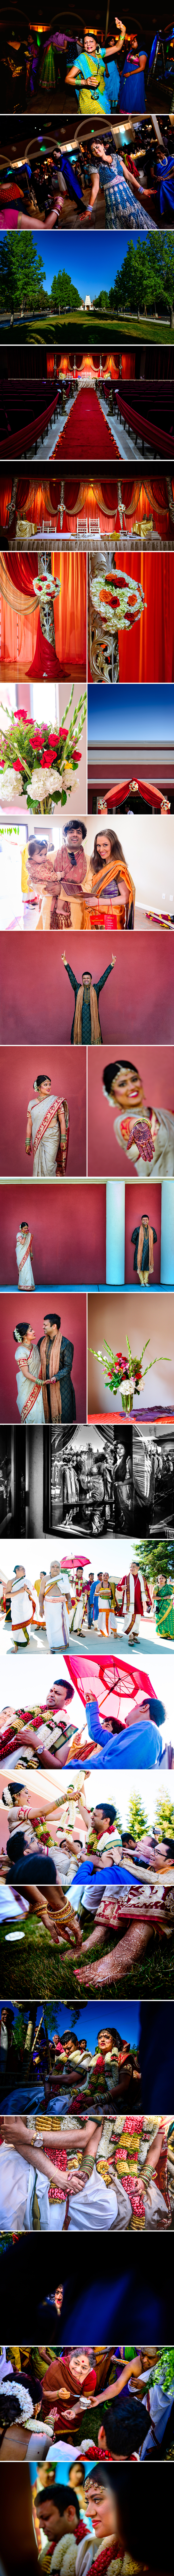 Indian Wedding Photographer San Francisco